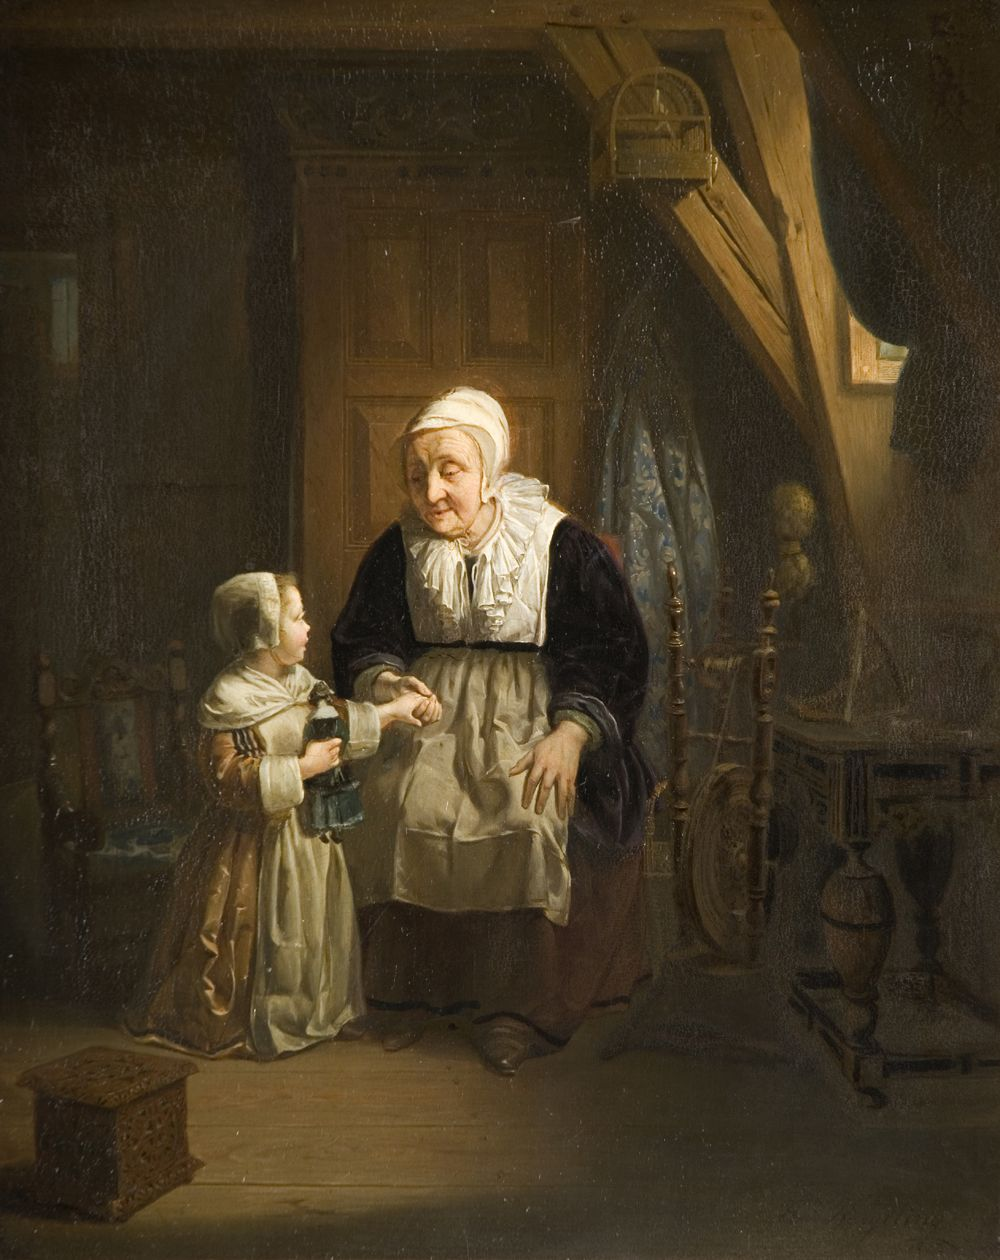 Woman and Child by Hendrick Ringeling, 1842.